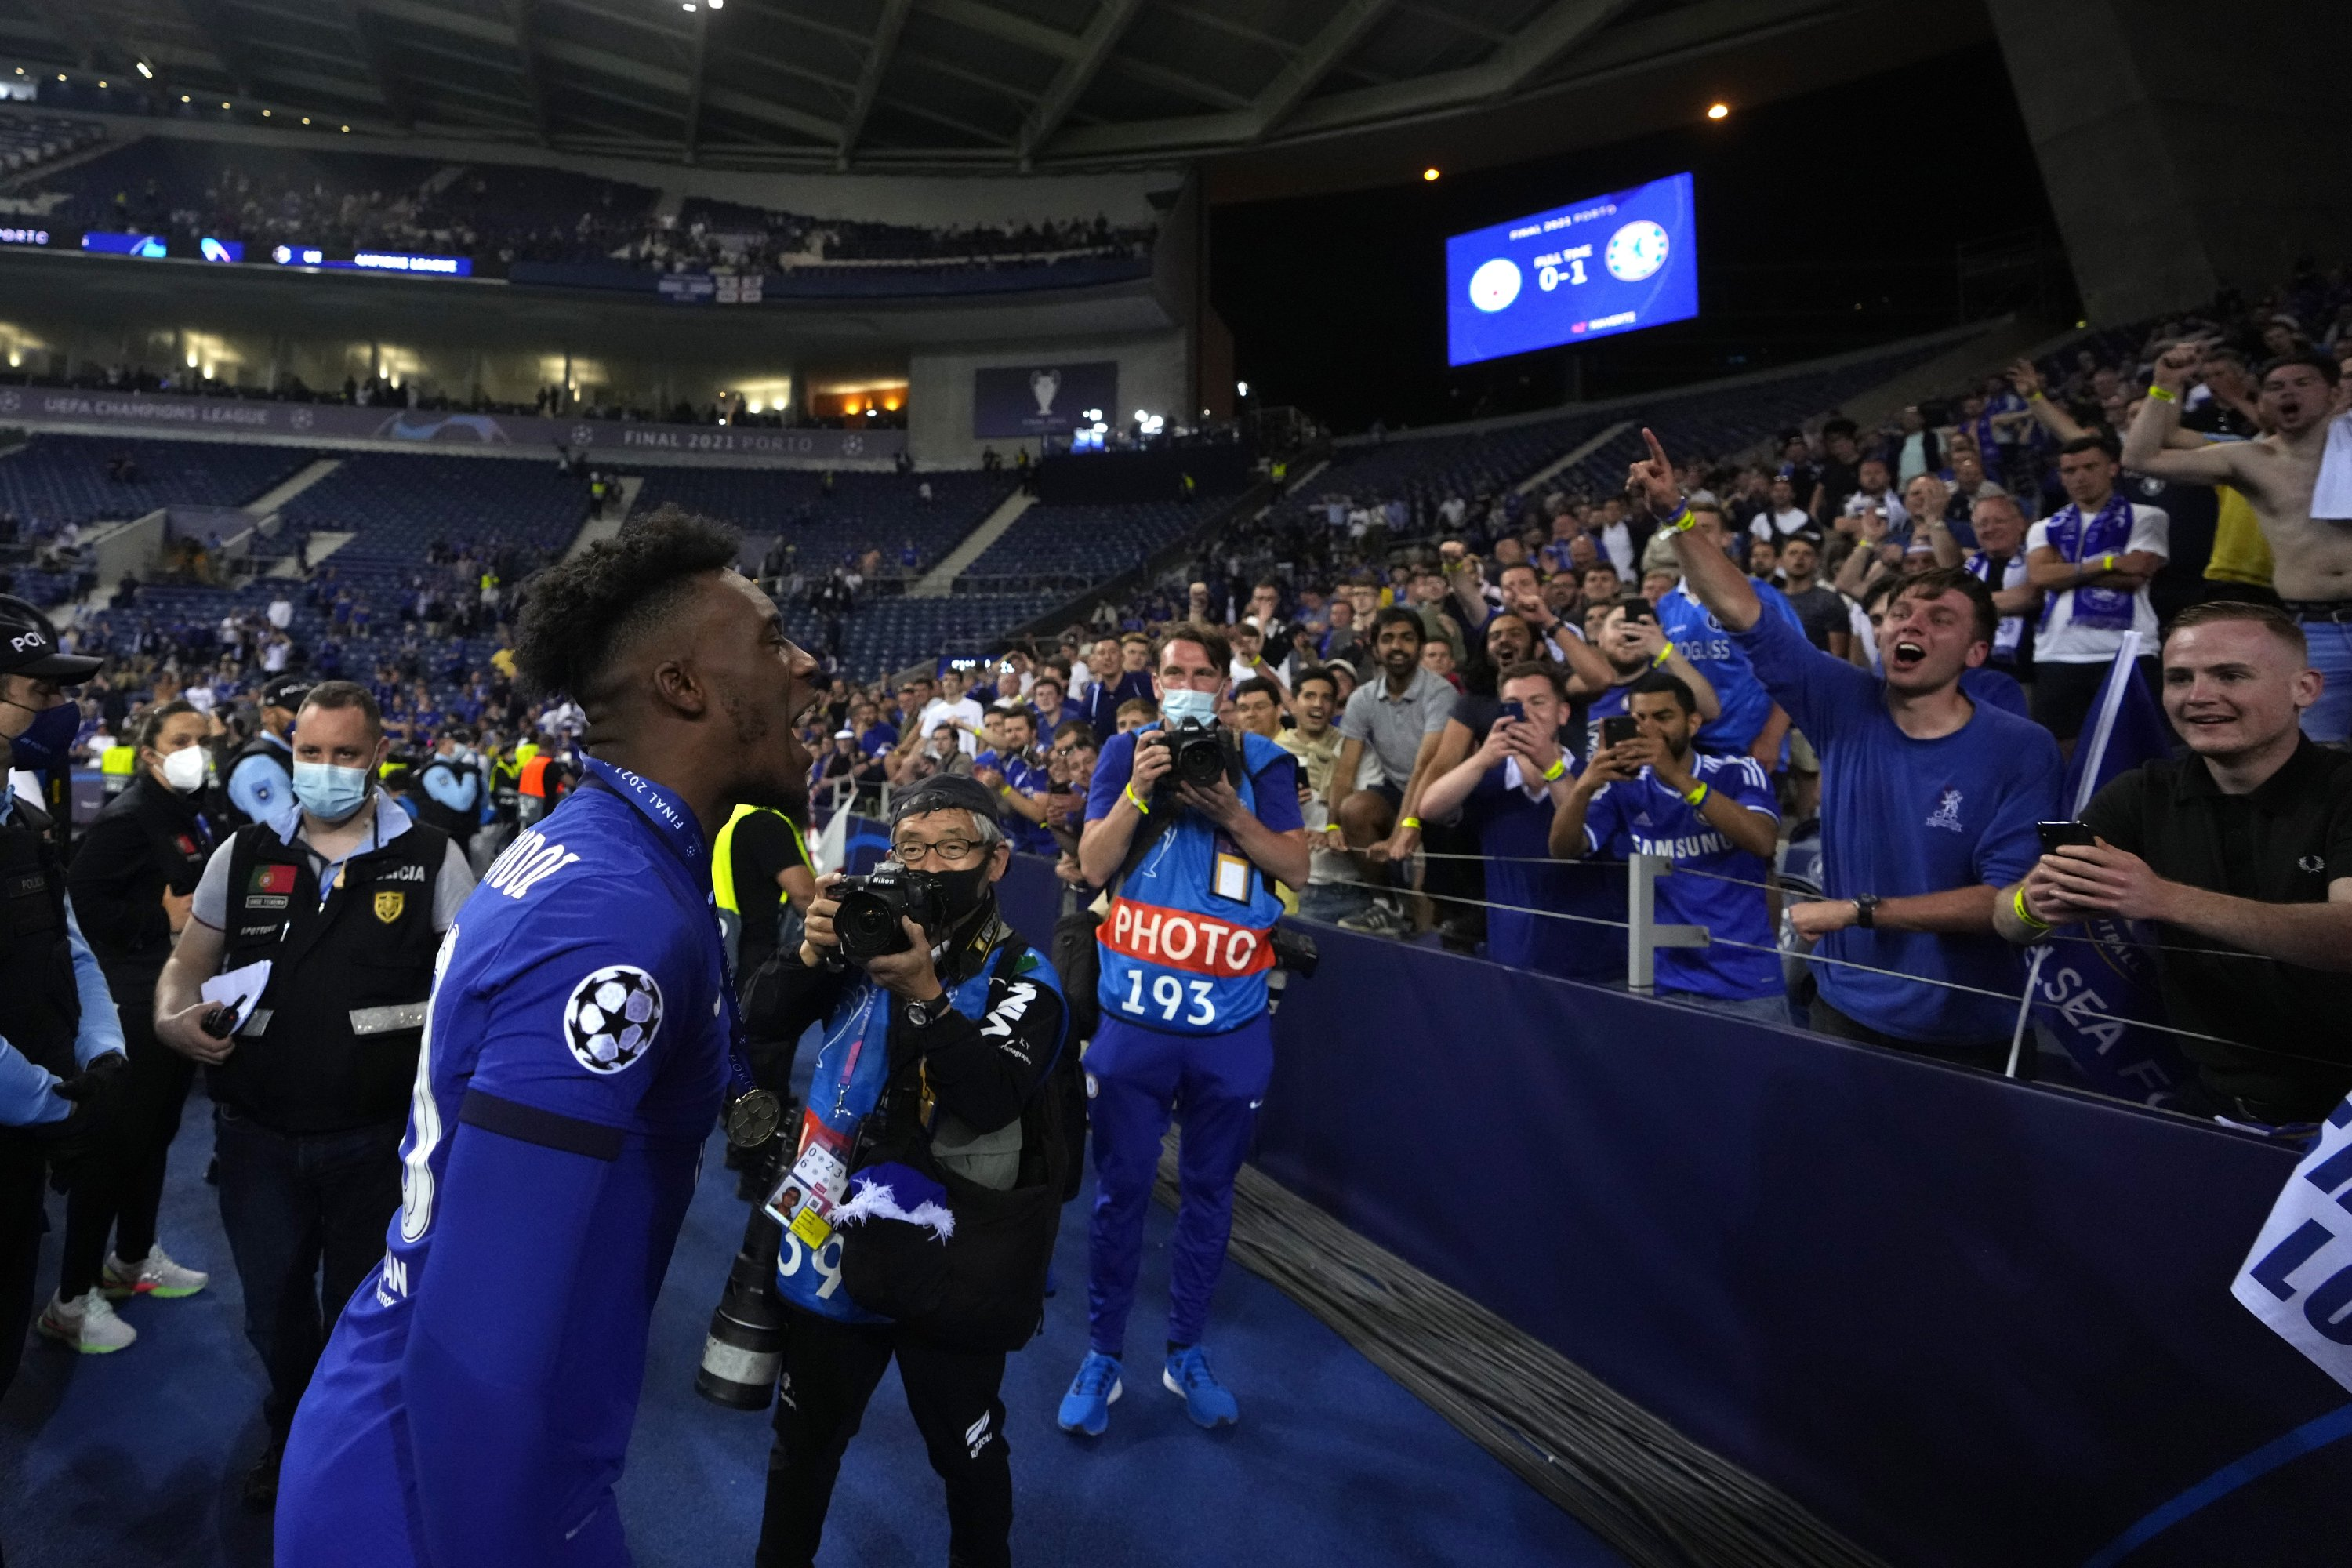 Chelsea's Callum Hudson-Odoi celebrates with fans after winning the Champions League final match against Manchester City at Dragao Stadium in Porto, Portugal, May 29, 2021. (AP Photo)